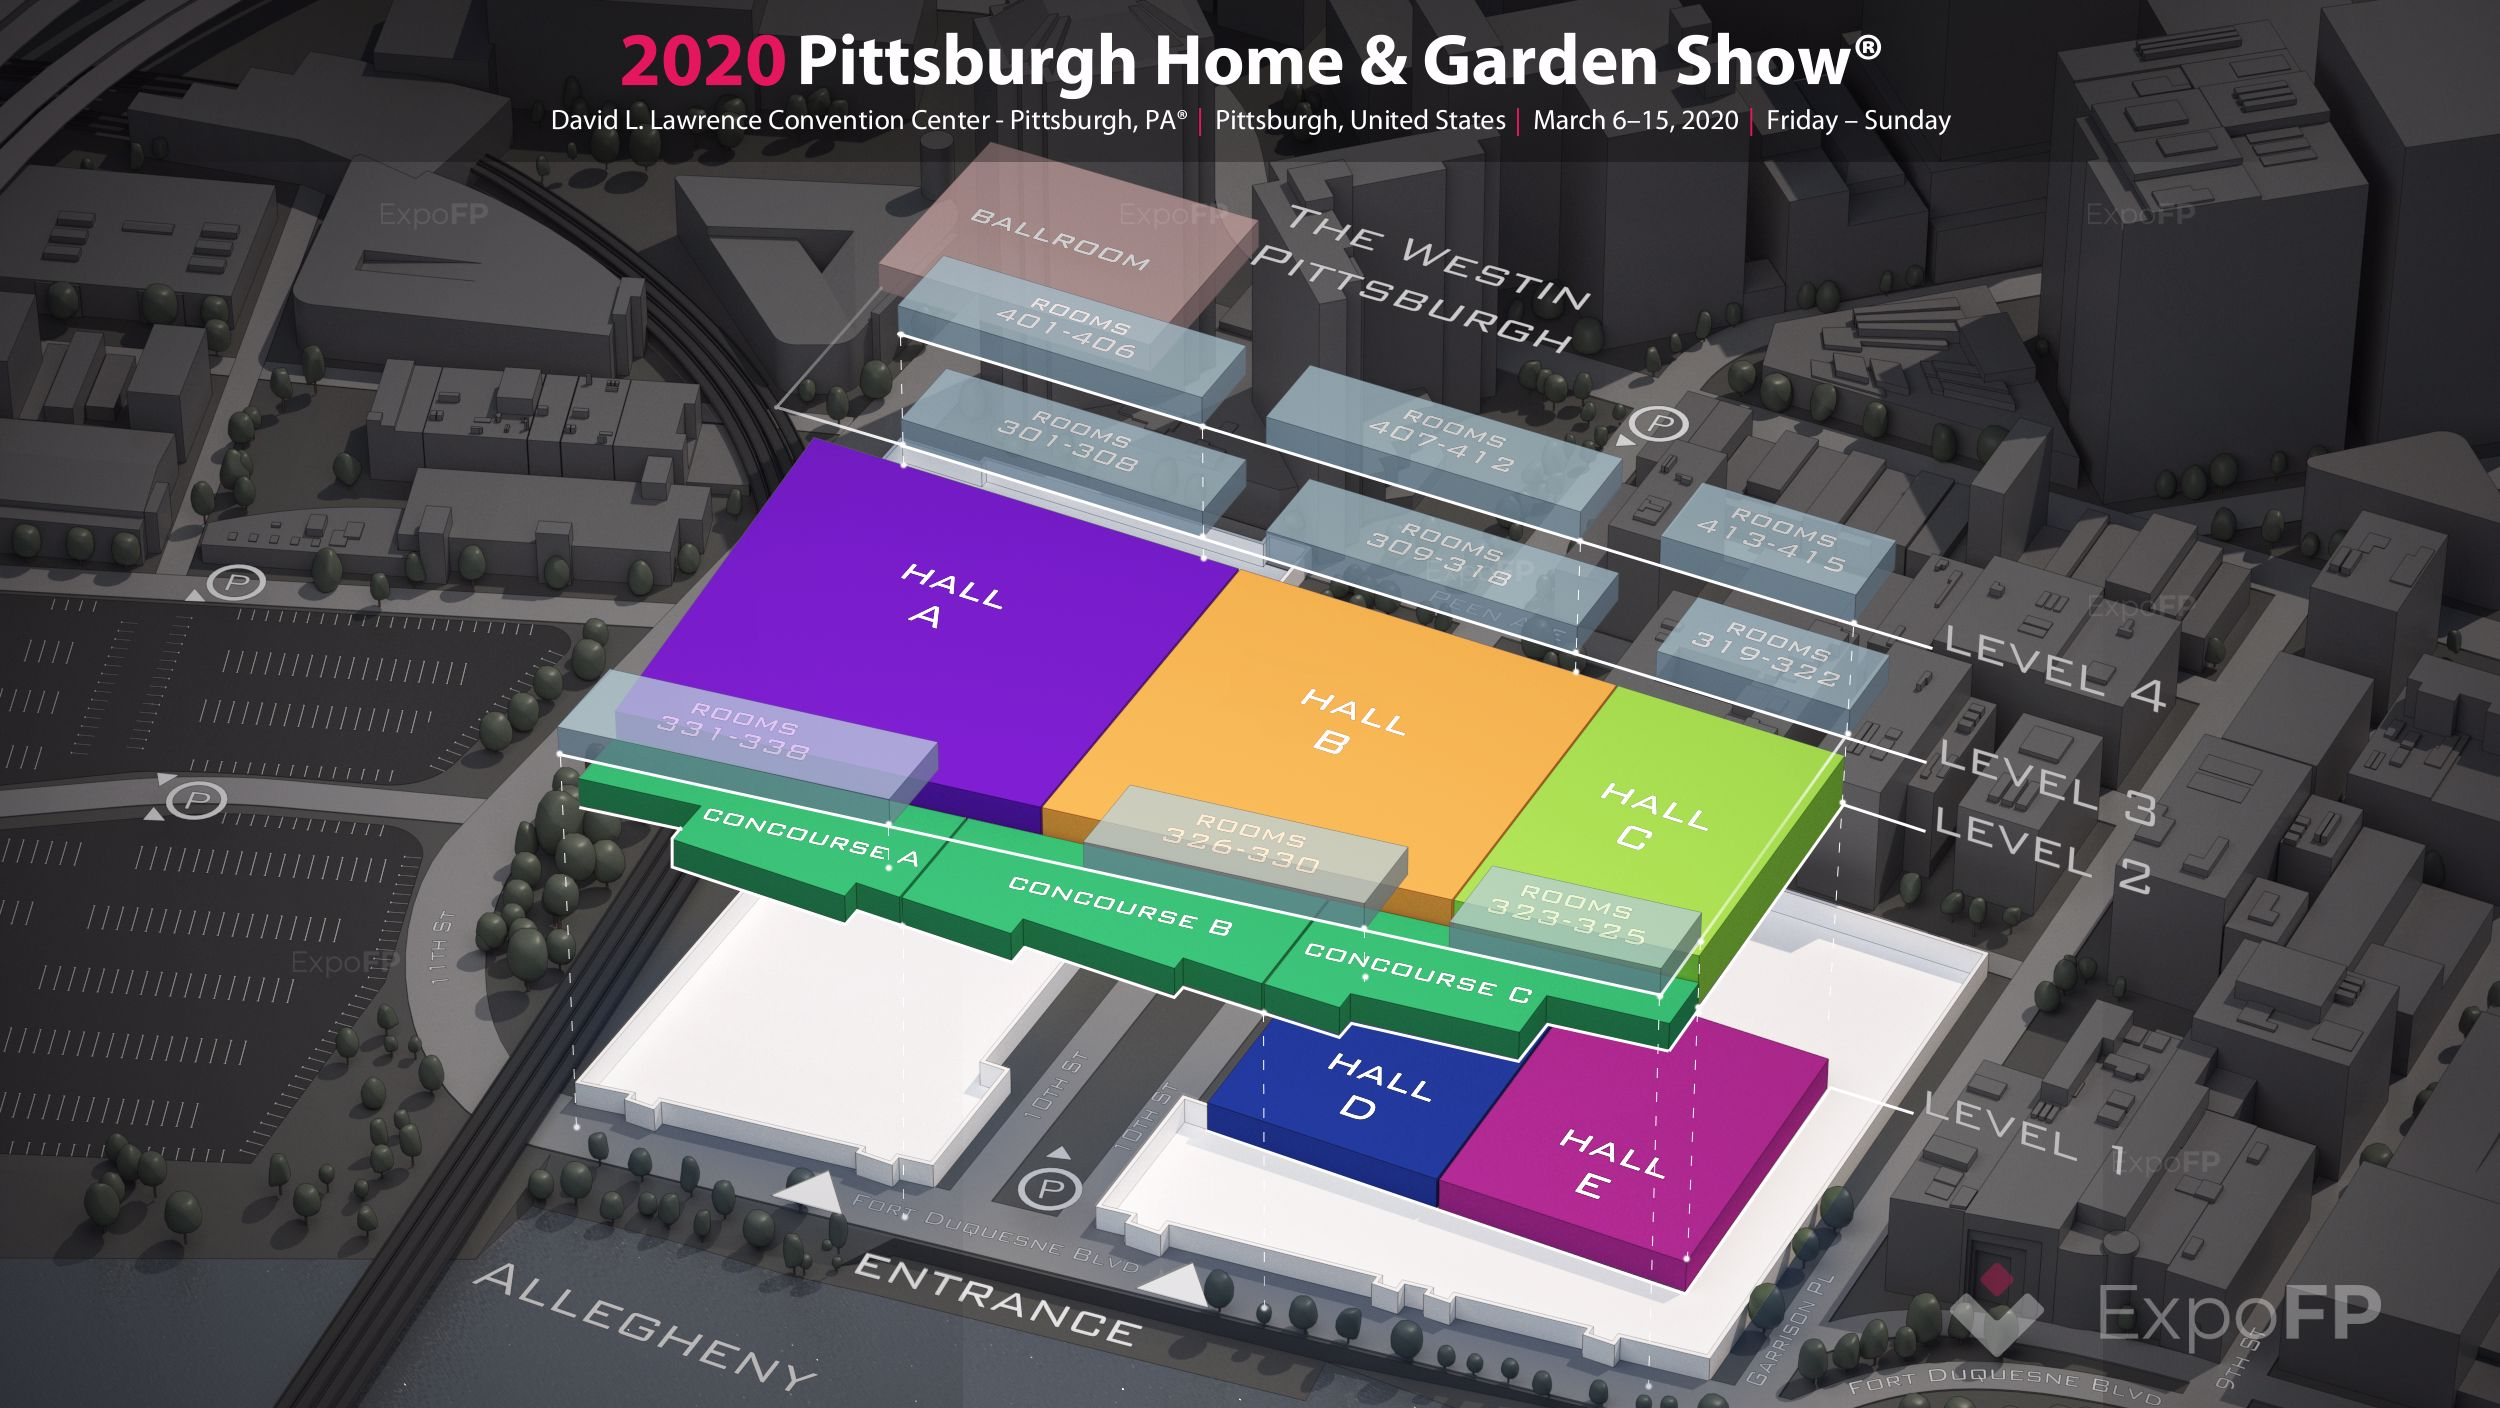 Home Garden Show 2020.Pittsburgh Home Garden Show 2020 In David L Lawrence